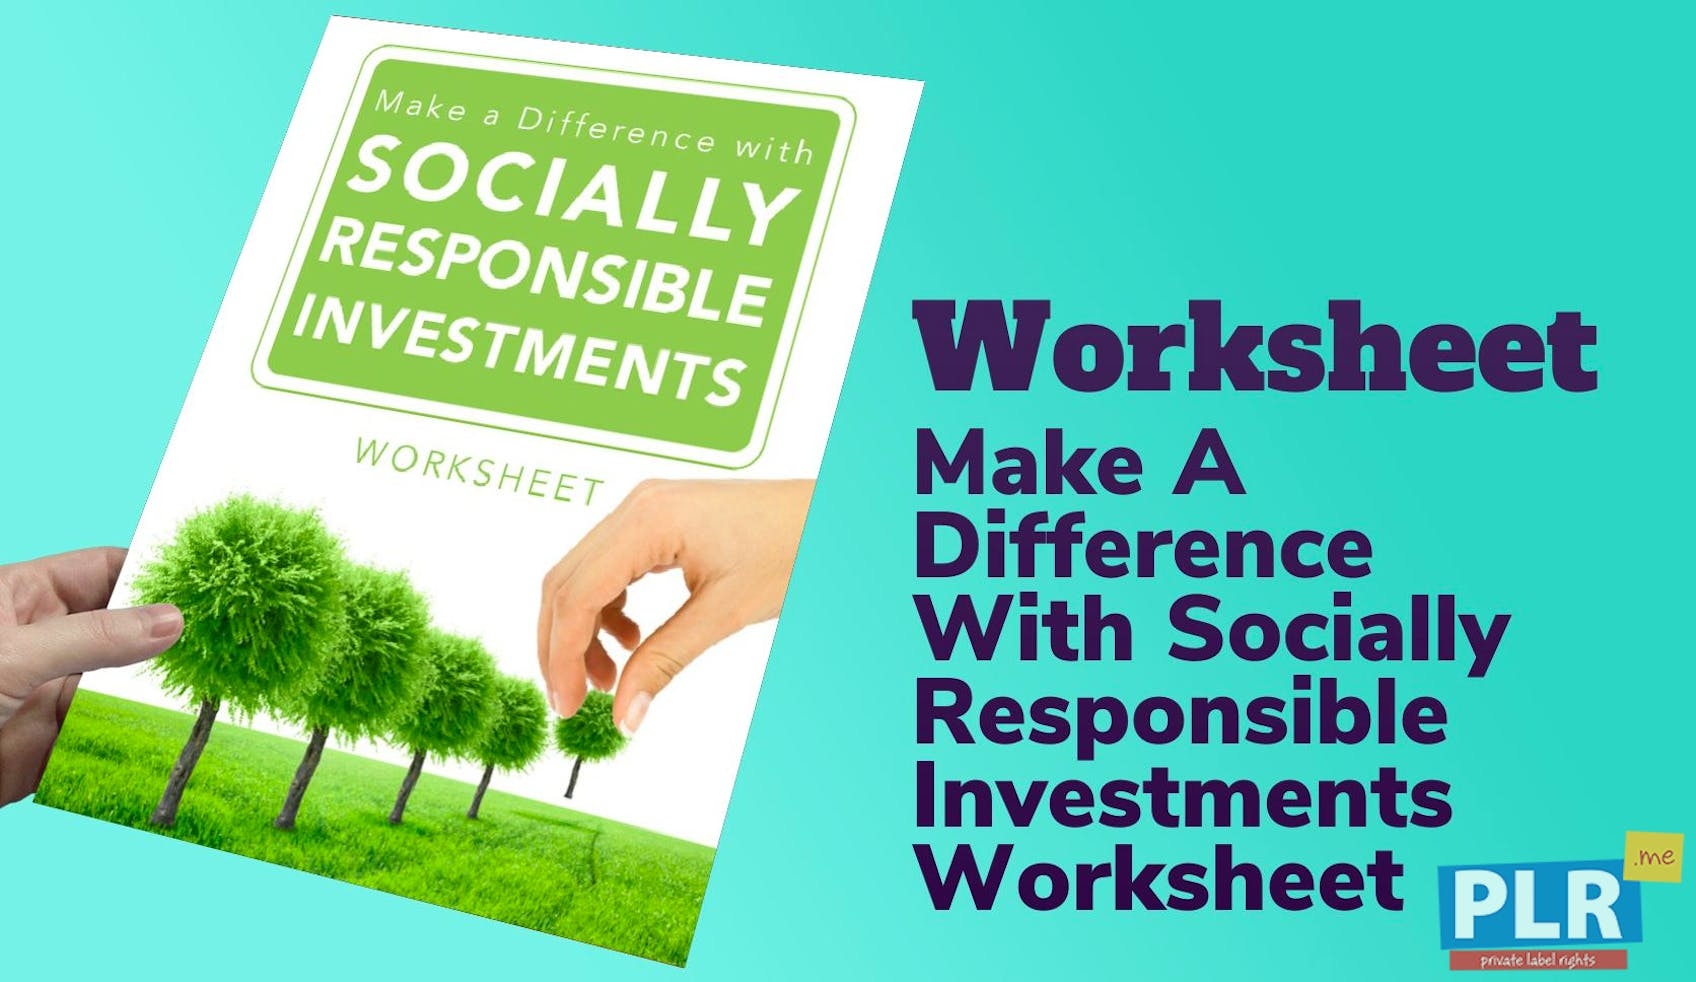 PLR Reports & eBooks - Make A Difference With Socially Responsible ...